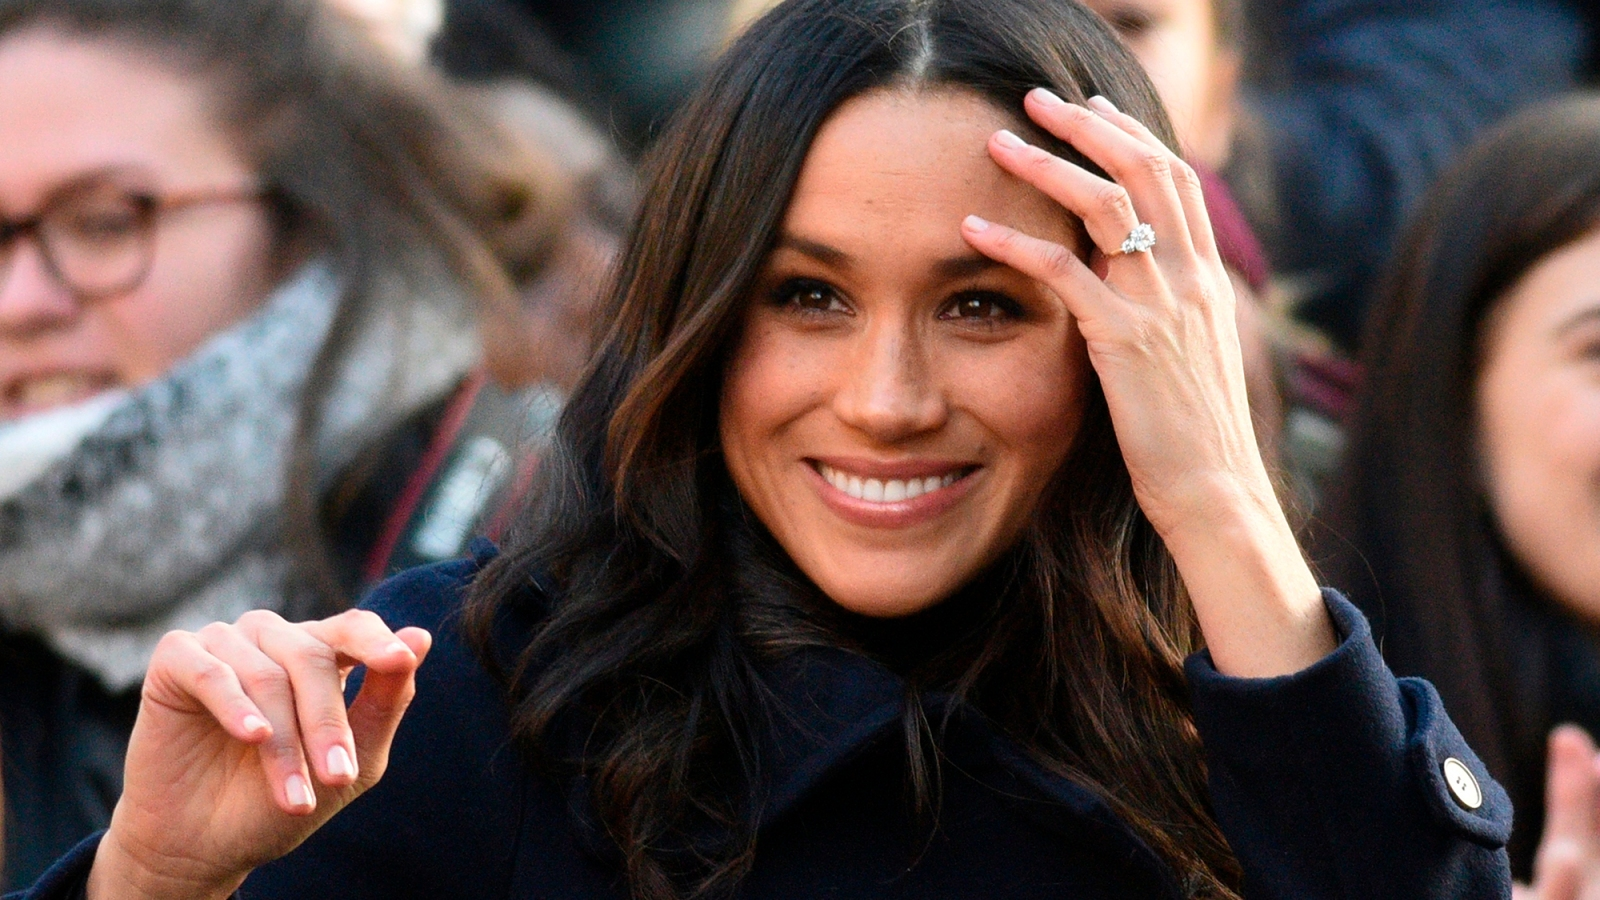 fe8732036f The Duchess Meghan Markle Engagement Ring Replica Is on Sale at Jewlr